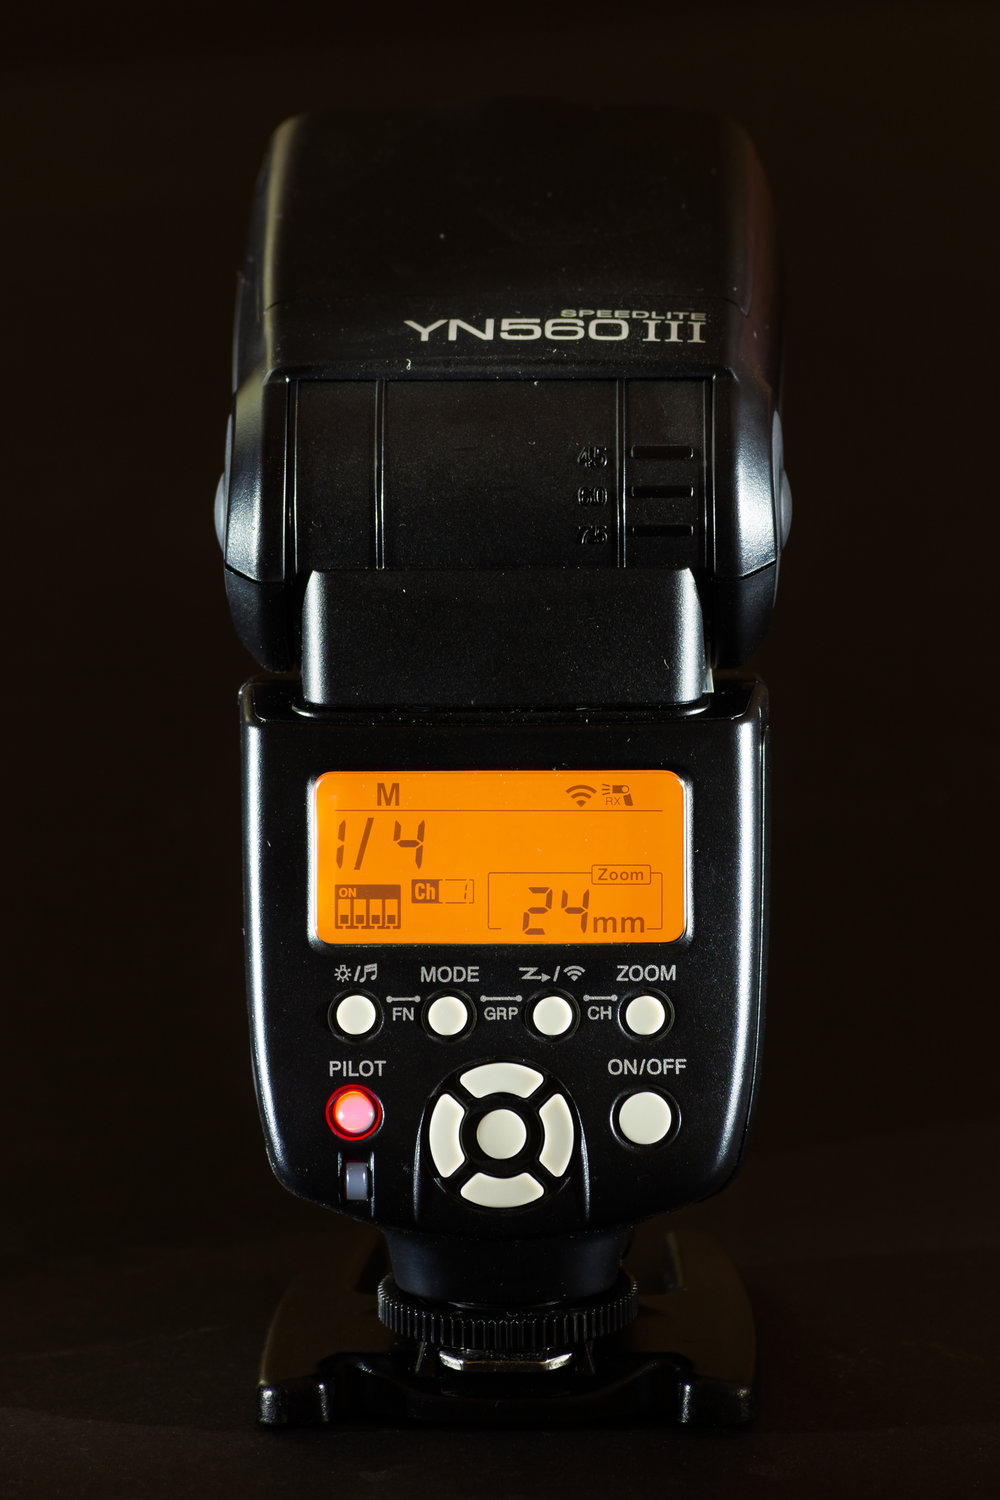 The YN 560iii flash unit made by Yongnuo.